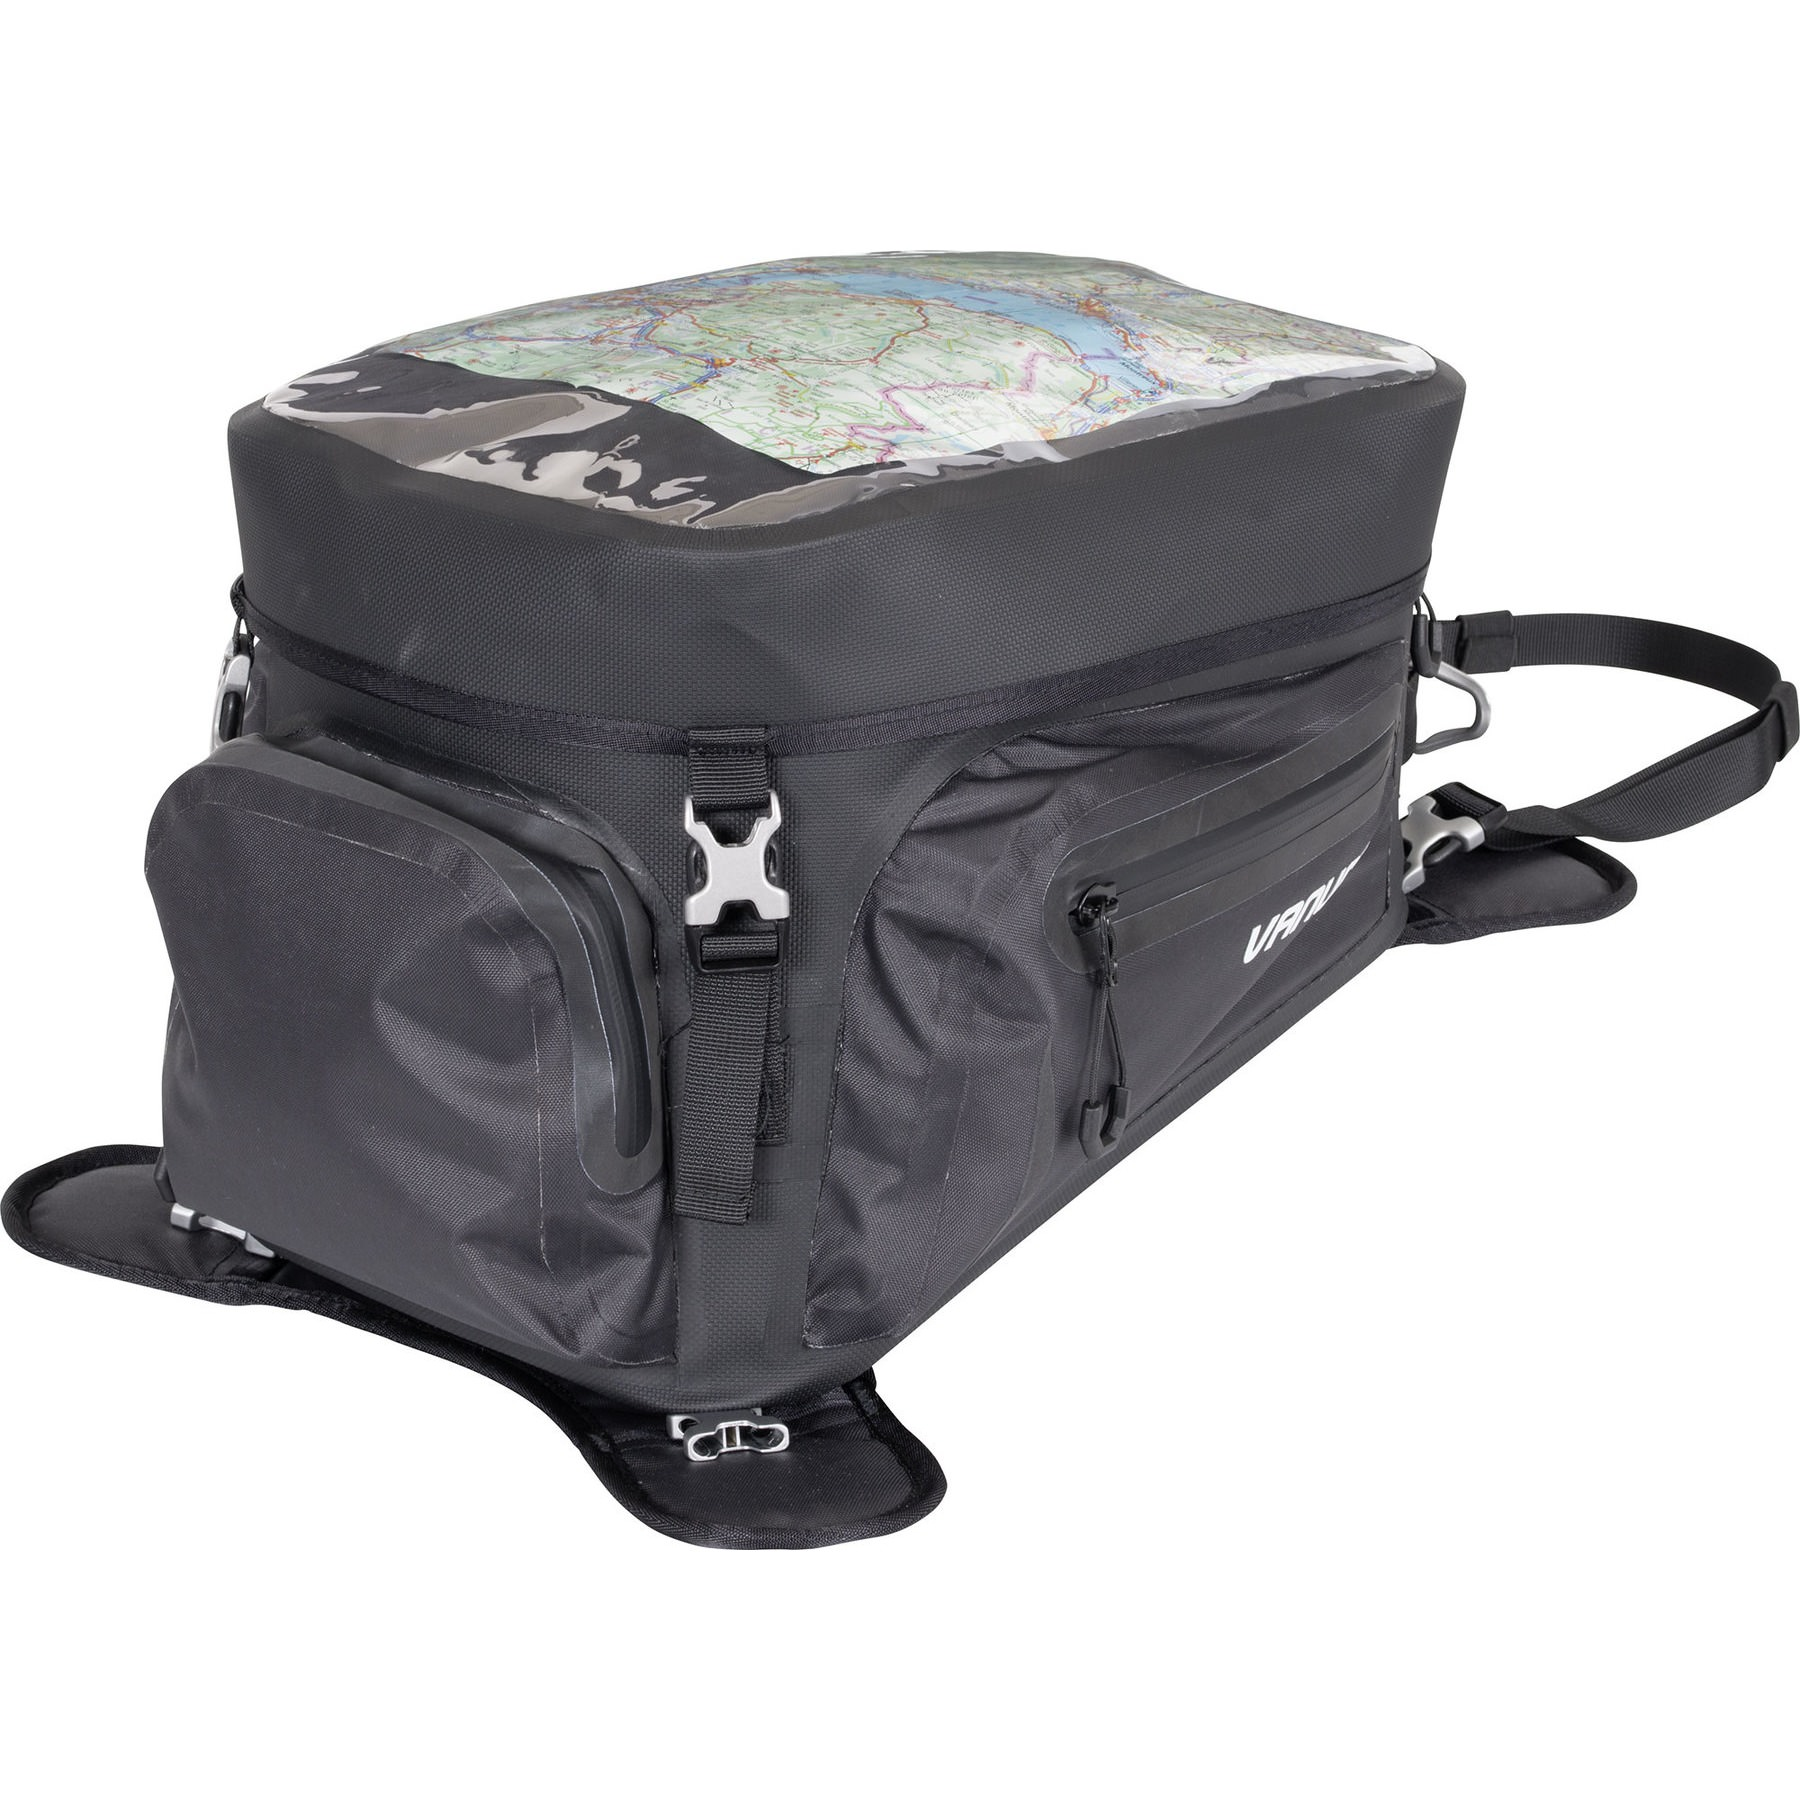 Motorbike Tank Bag Motorcycle Fuel Saddle Tank Package Universal Waterproof Riding Organizer With Strong Magnetic Navigator GPS And Phone Holder Outdoor For All Types Of Fuel Tank